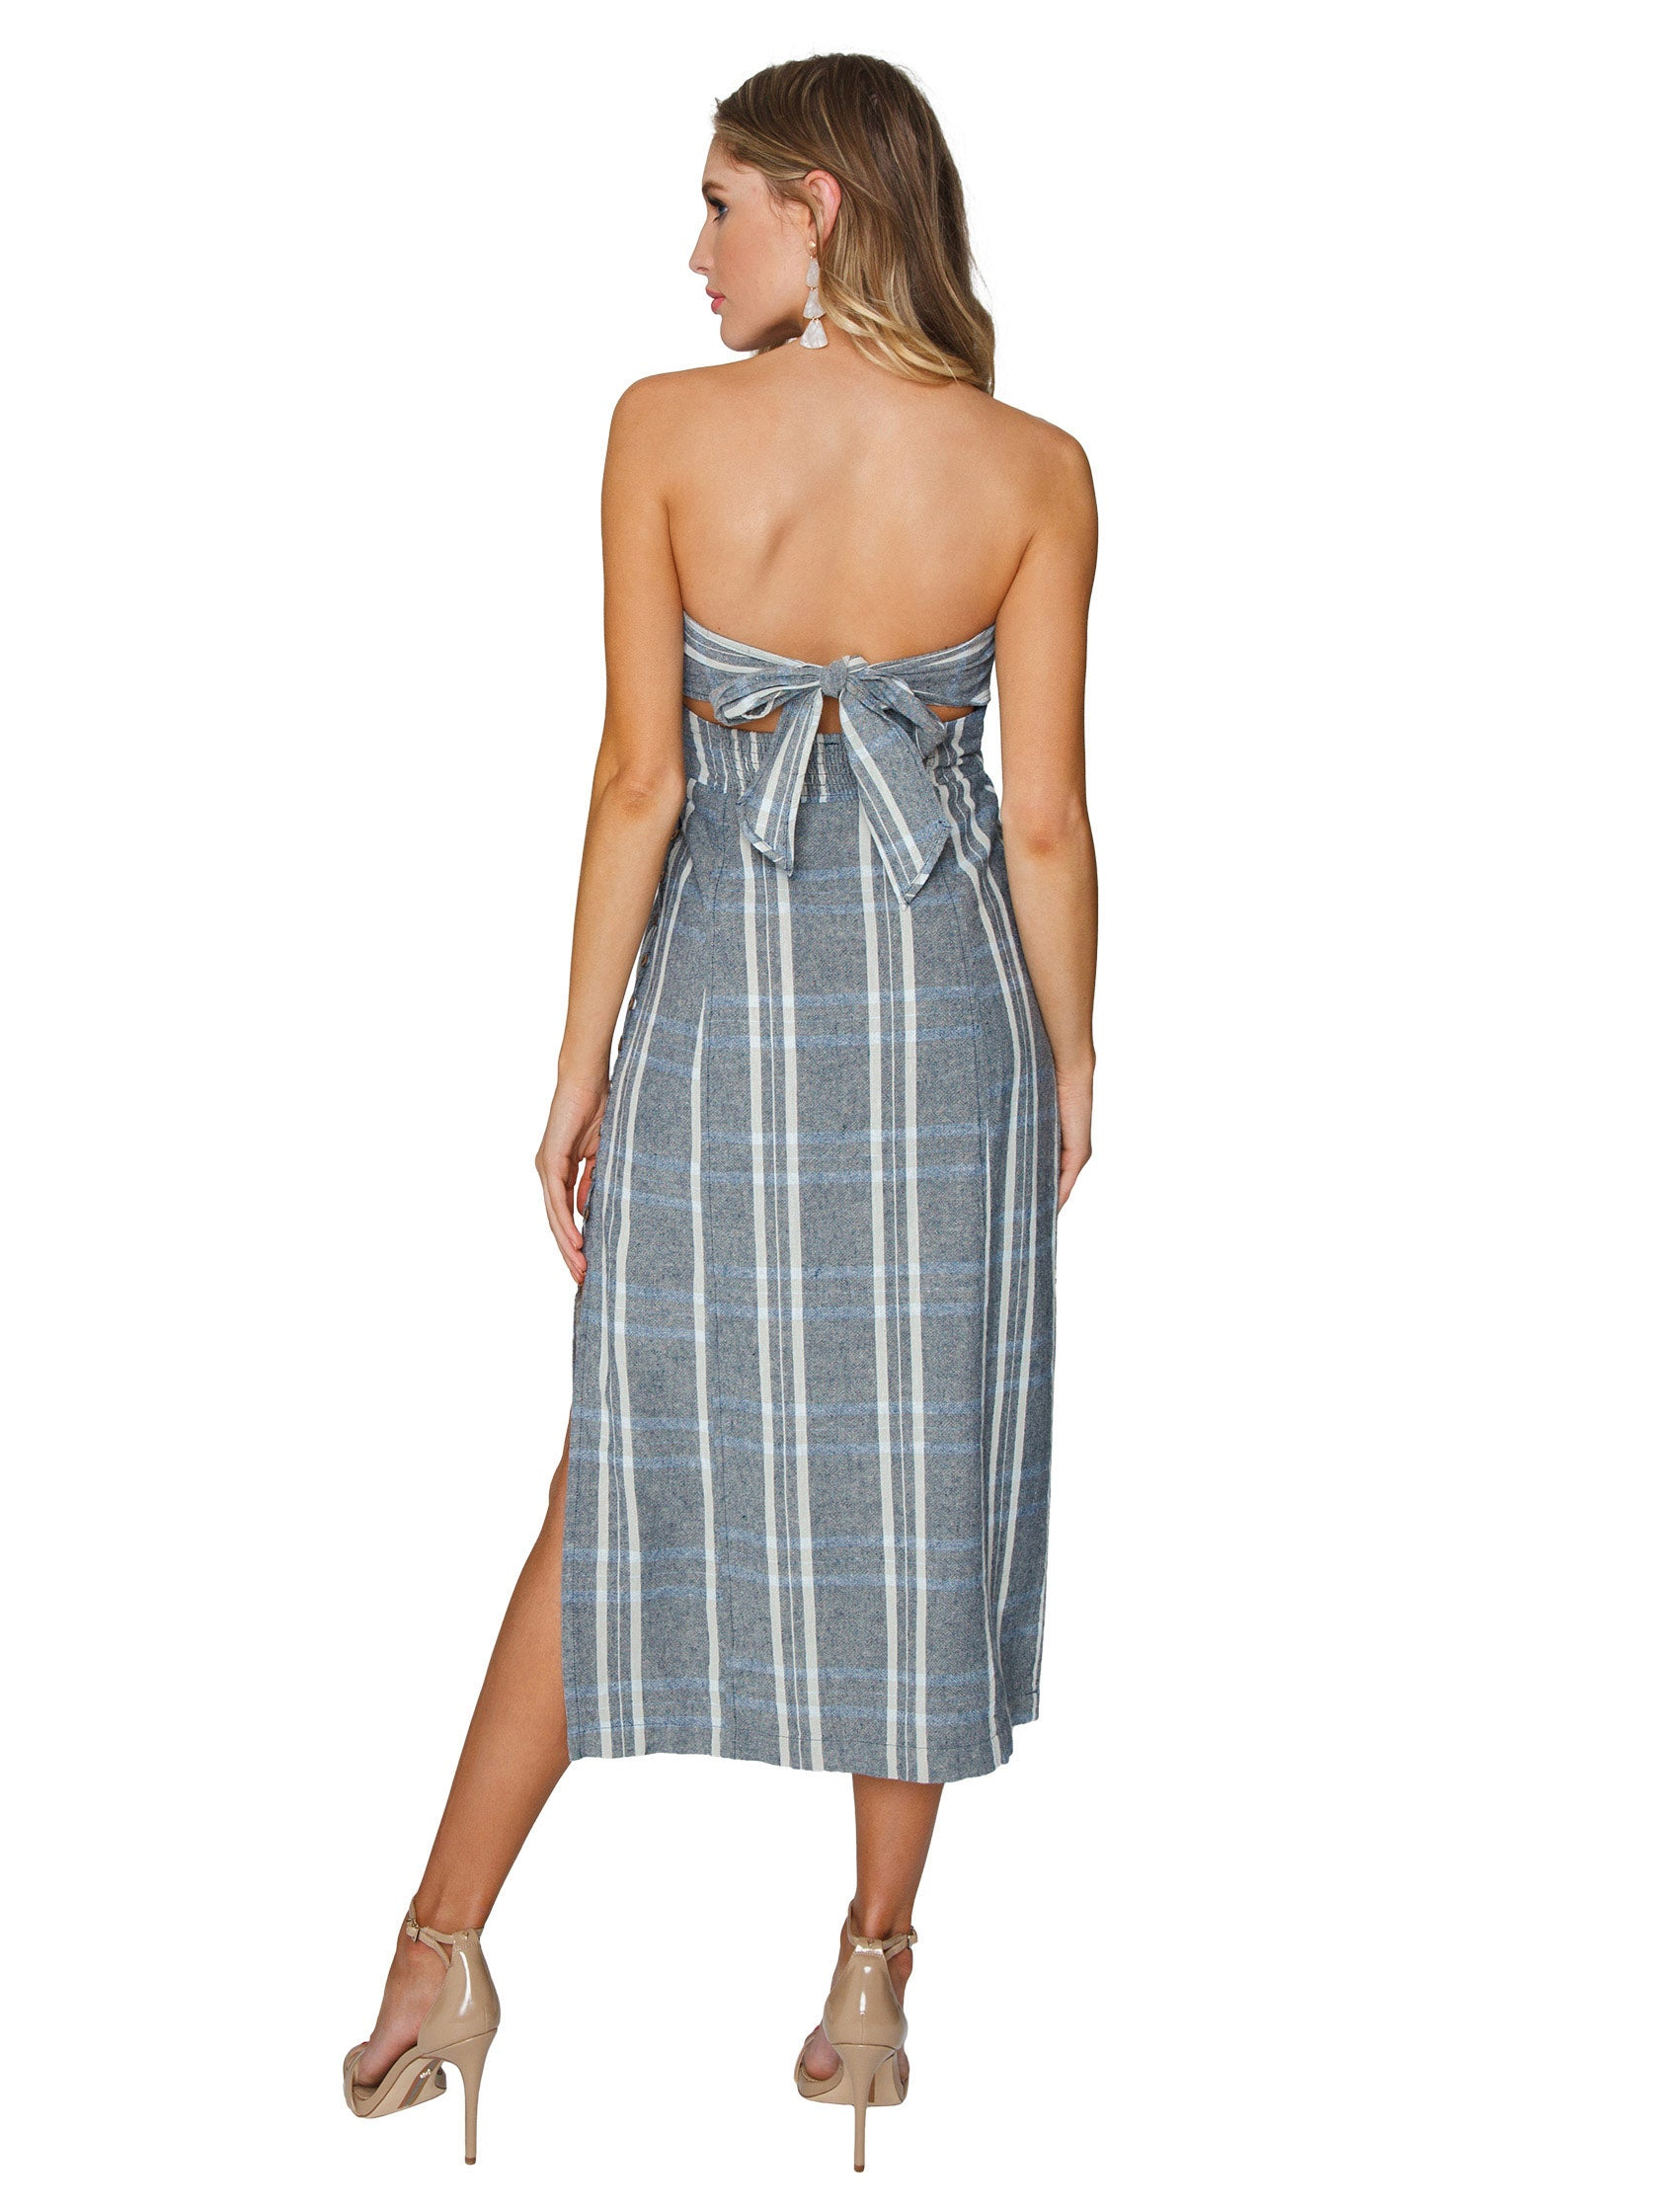 Women wearing a dress rental from Free People called Life Like This Plaid Dress